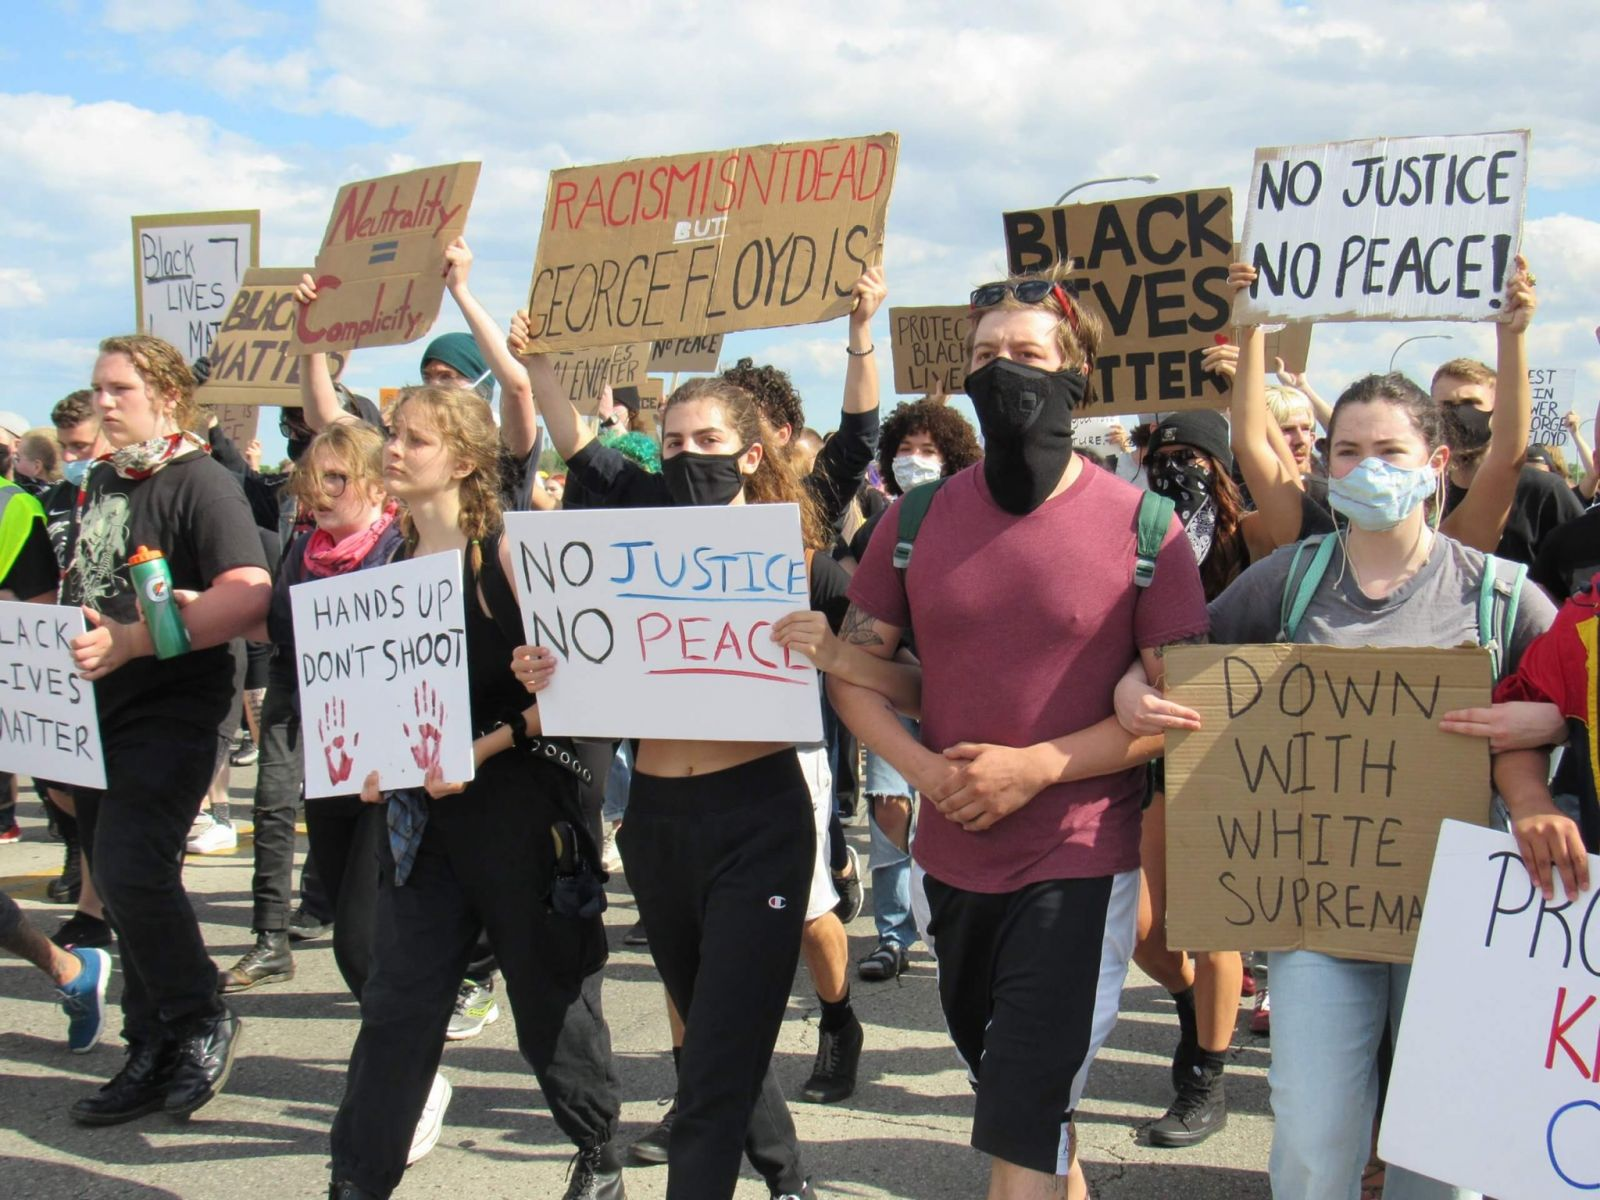 young people at a rally shared on progressive facebook account holding signs for BLM movement